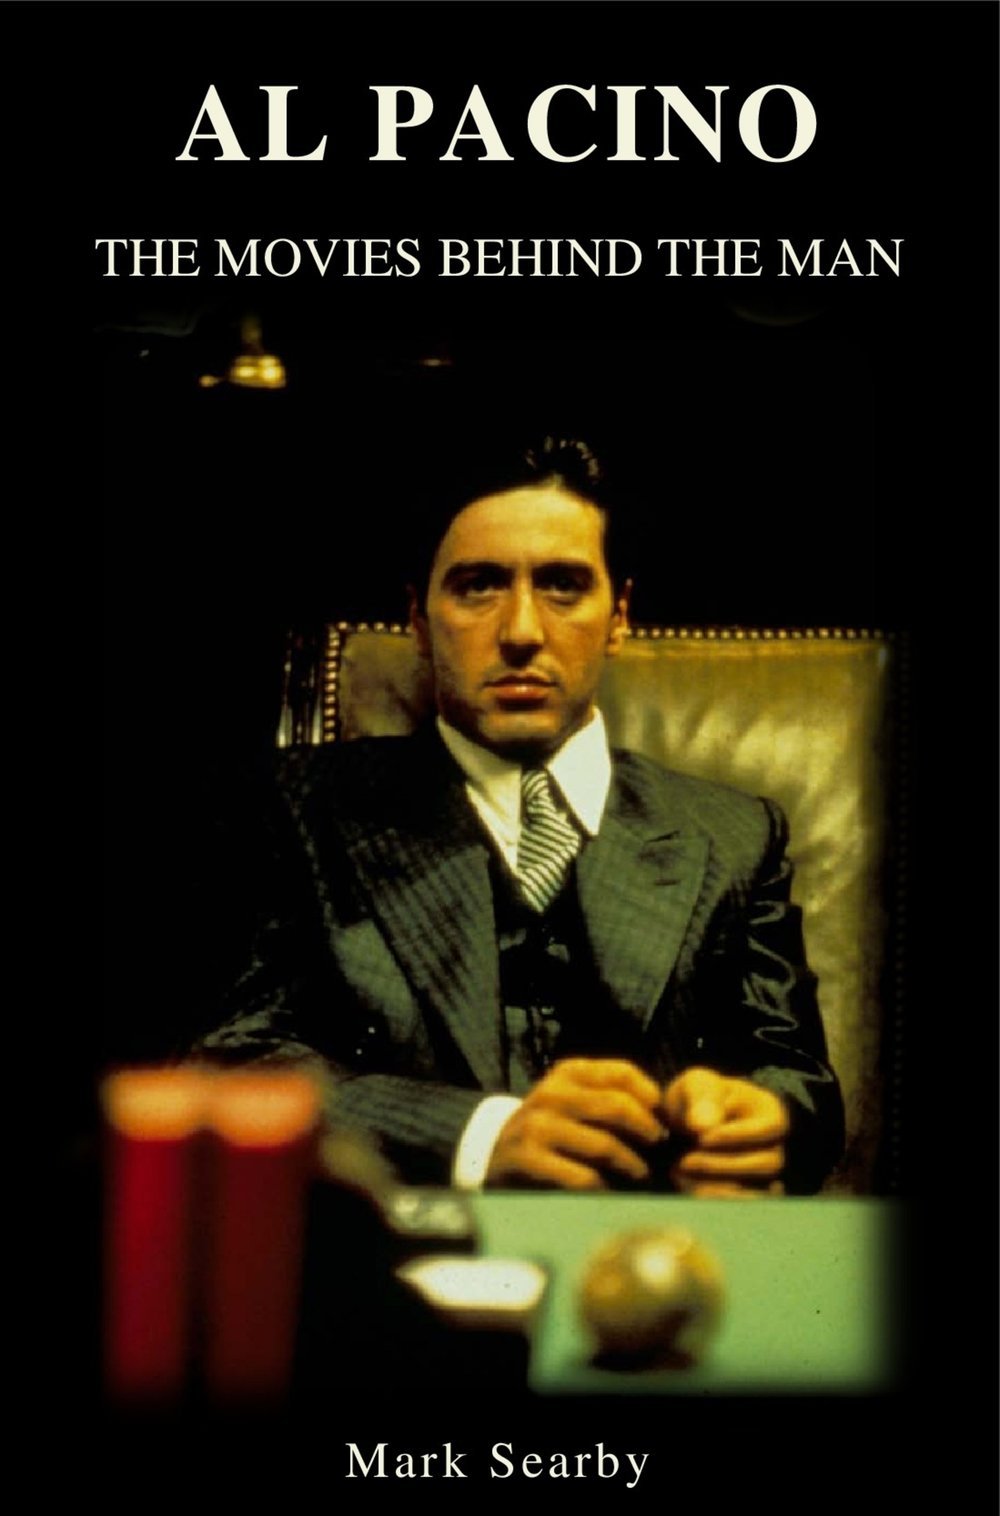 - Al Pacino: The Movies Behind The Man is the ultimate insider's guide to the filmography of the legendary Hollywood actor.Consistently recognised as one of the greatest actors of all time, Al Pacino has a huge legacy within film and an equally impressive archive of awards to his name. Unlike many other books that hold a sole character in their title, whether you're a fan of his repertoire or not, Al Pacino: The Movies Behind The Man gives a remarkable and often unexplored insight into film and one of it's key actors, making this an accessible and inspiring read.Giving an in-depth look at the films made by this icon throughout his career, Al Pacino: The Movies Behind The Man explores his legacy from his breakout performance in The Panic in Needle Park through to the early highs of the 1970s and 80s with The Godfather Parts I and II, Serpico, Dog Day Afternoon and Scarface. Each chapter of this book guides the reader through the inception, pre-production and filming of Al Pacino's entire film catalogue, delving in to previously unearthed critique and opinions of those that worked so closely with him.Readers can explore the reviews and the box office returns and digest a critical analysis on every film Pacino has ever worked on. His big box office hits such as Heat, The Devil's Advocate and Donnie Brasco through to the smaller, independent and personal productions including The Local Stigmatic, Looking For Richard and Chinese Coffee make for an inspirited variation of accounts and insight into the workings of such a highly regarded character.Featuring over fifty exclusive interviews from actors, directors, producers and writers, interviews include the likes of Stephen Bauer (Scarface), Jerry Schatzberg (The Panic in Needle Park), Israel Horovitz (Author! Author!), Hugh Hudson (Revolution), Bruce Altman (Glengarry Glen Ross), Lowell Bergman (The Insider), Jay Mohr (S1m0ne), Cary Brokaw (Angels in America), Kris Marshall (The Merchant of Venice), Lawrence Grobel (Salome and Wilde Salome) and many more.Giving a unique insight and depth to the workings behind a film icon, Mark Searby presents, AL PACINO: THE MOVIES BEHIND THE MANAvailable to purchase now. Click for Amazon UK, Amazon US, Barnes & Noble, Kobo, Smashword, iBooks and other e-book retailers.Paperback edition available here